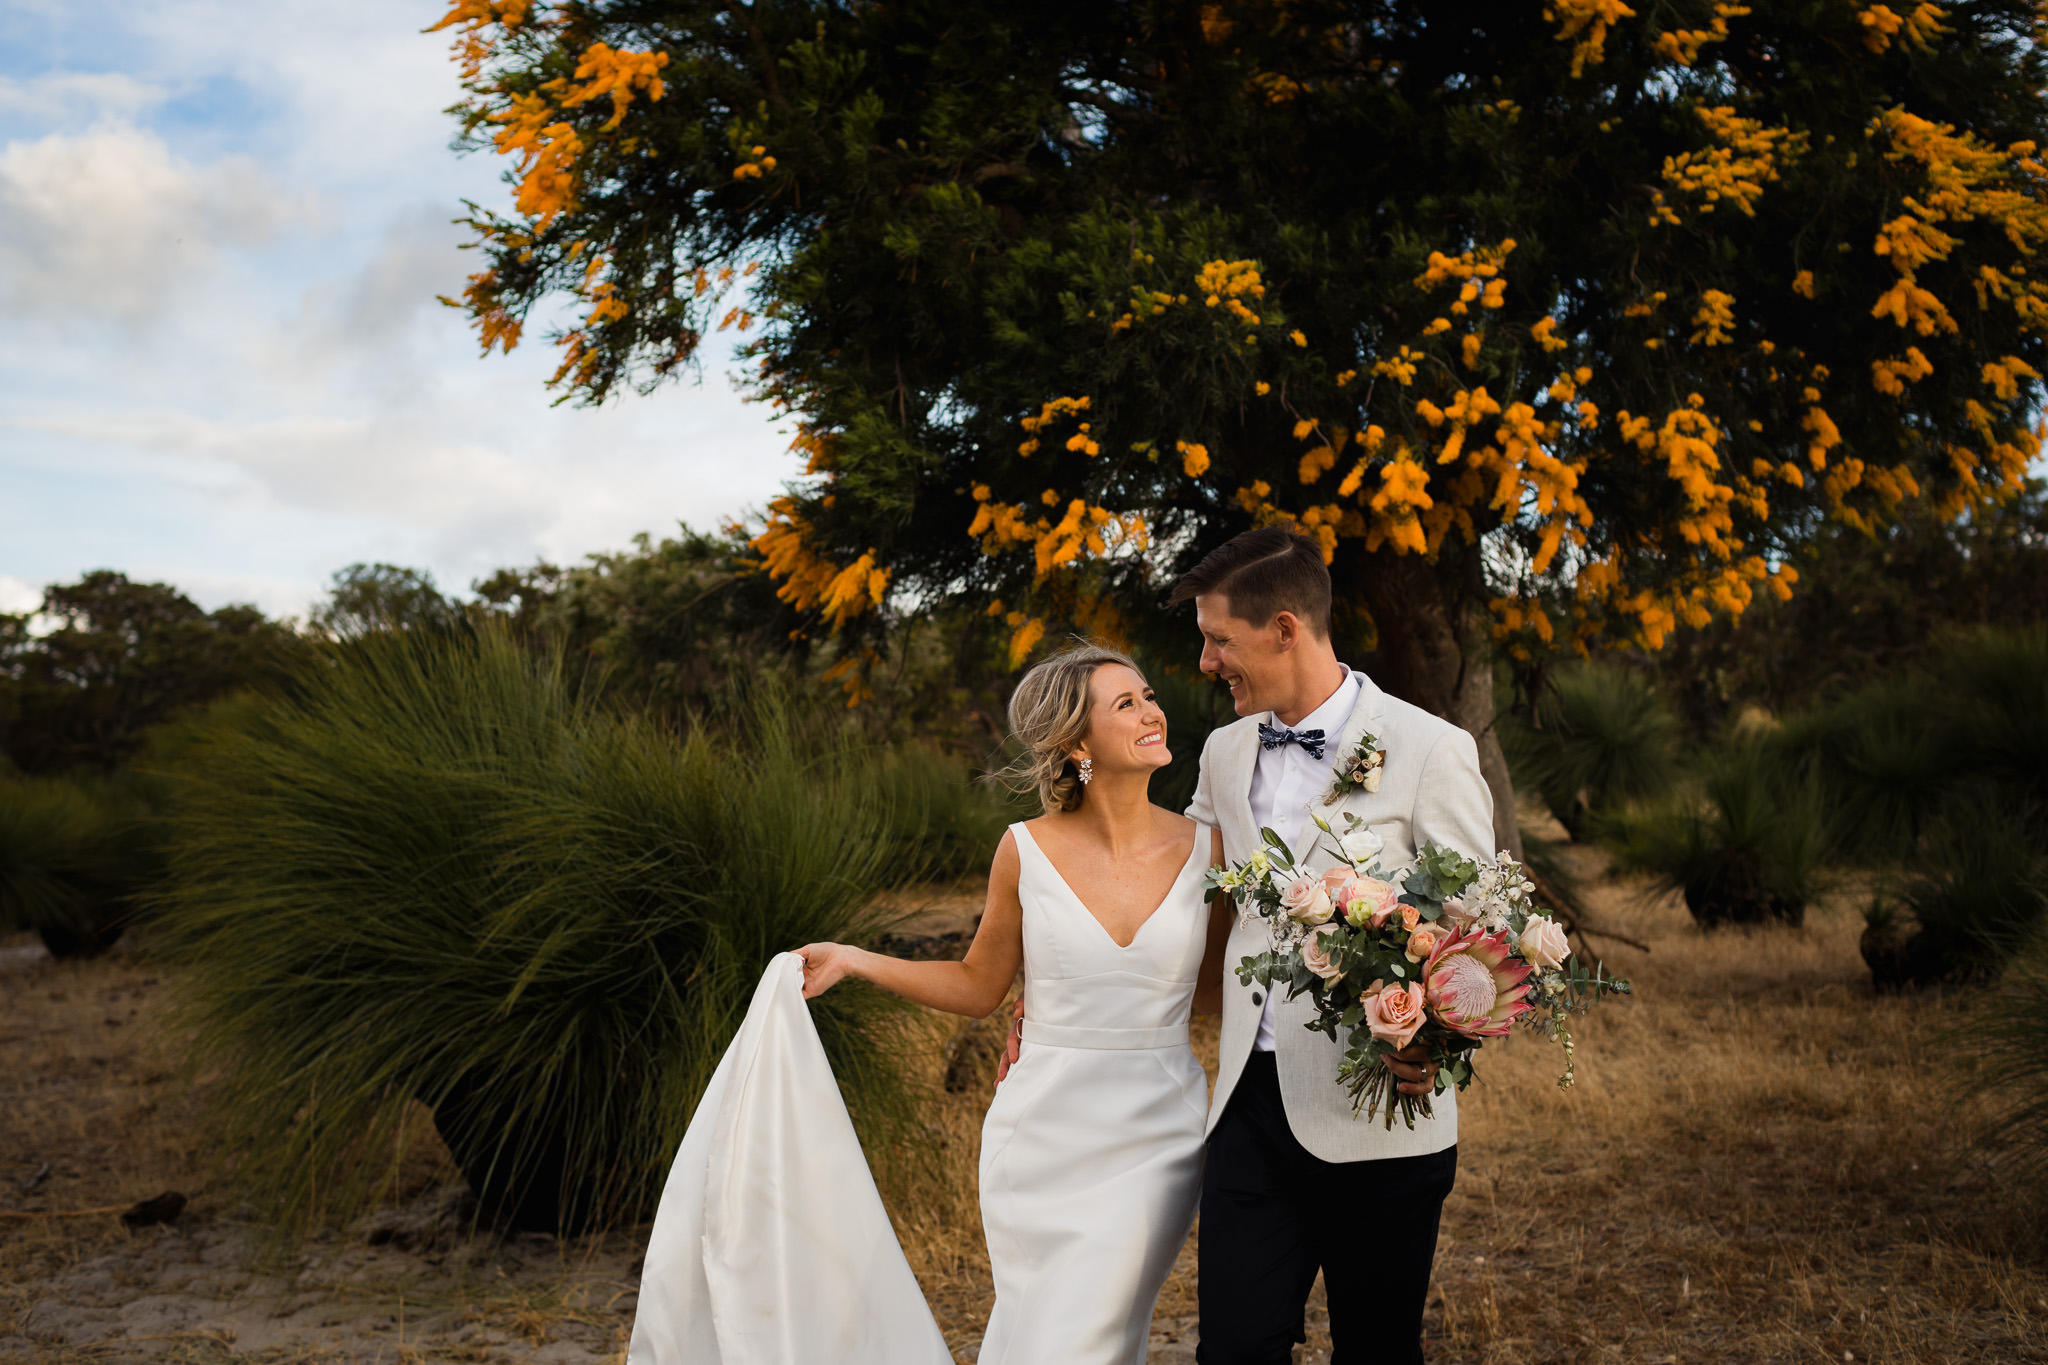 Bride holding dress and walking with husband holding native protea bouquet in front of Australia Christmas tree with yellow flowers at Solitaire Homestead